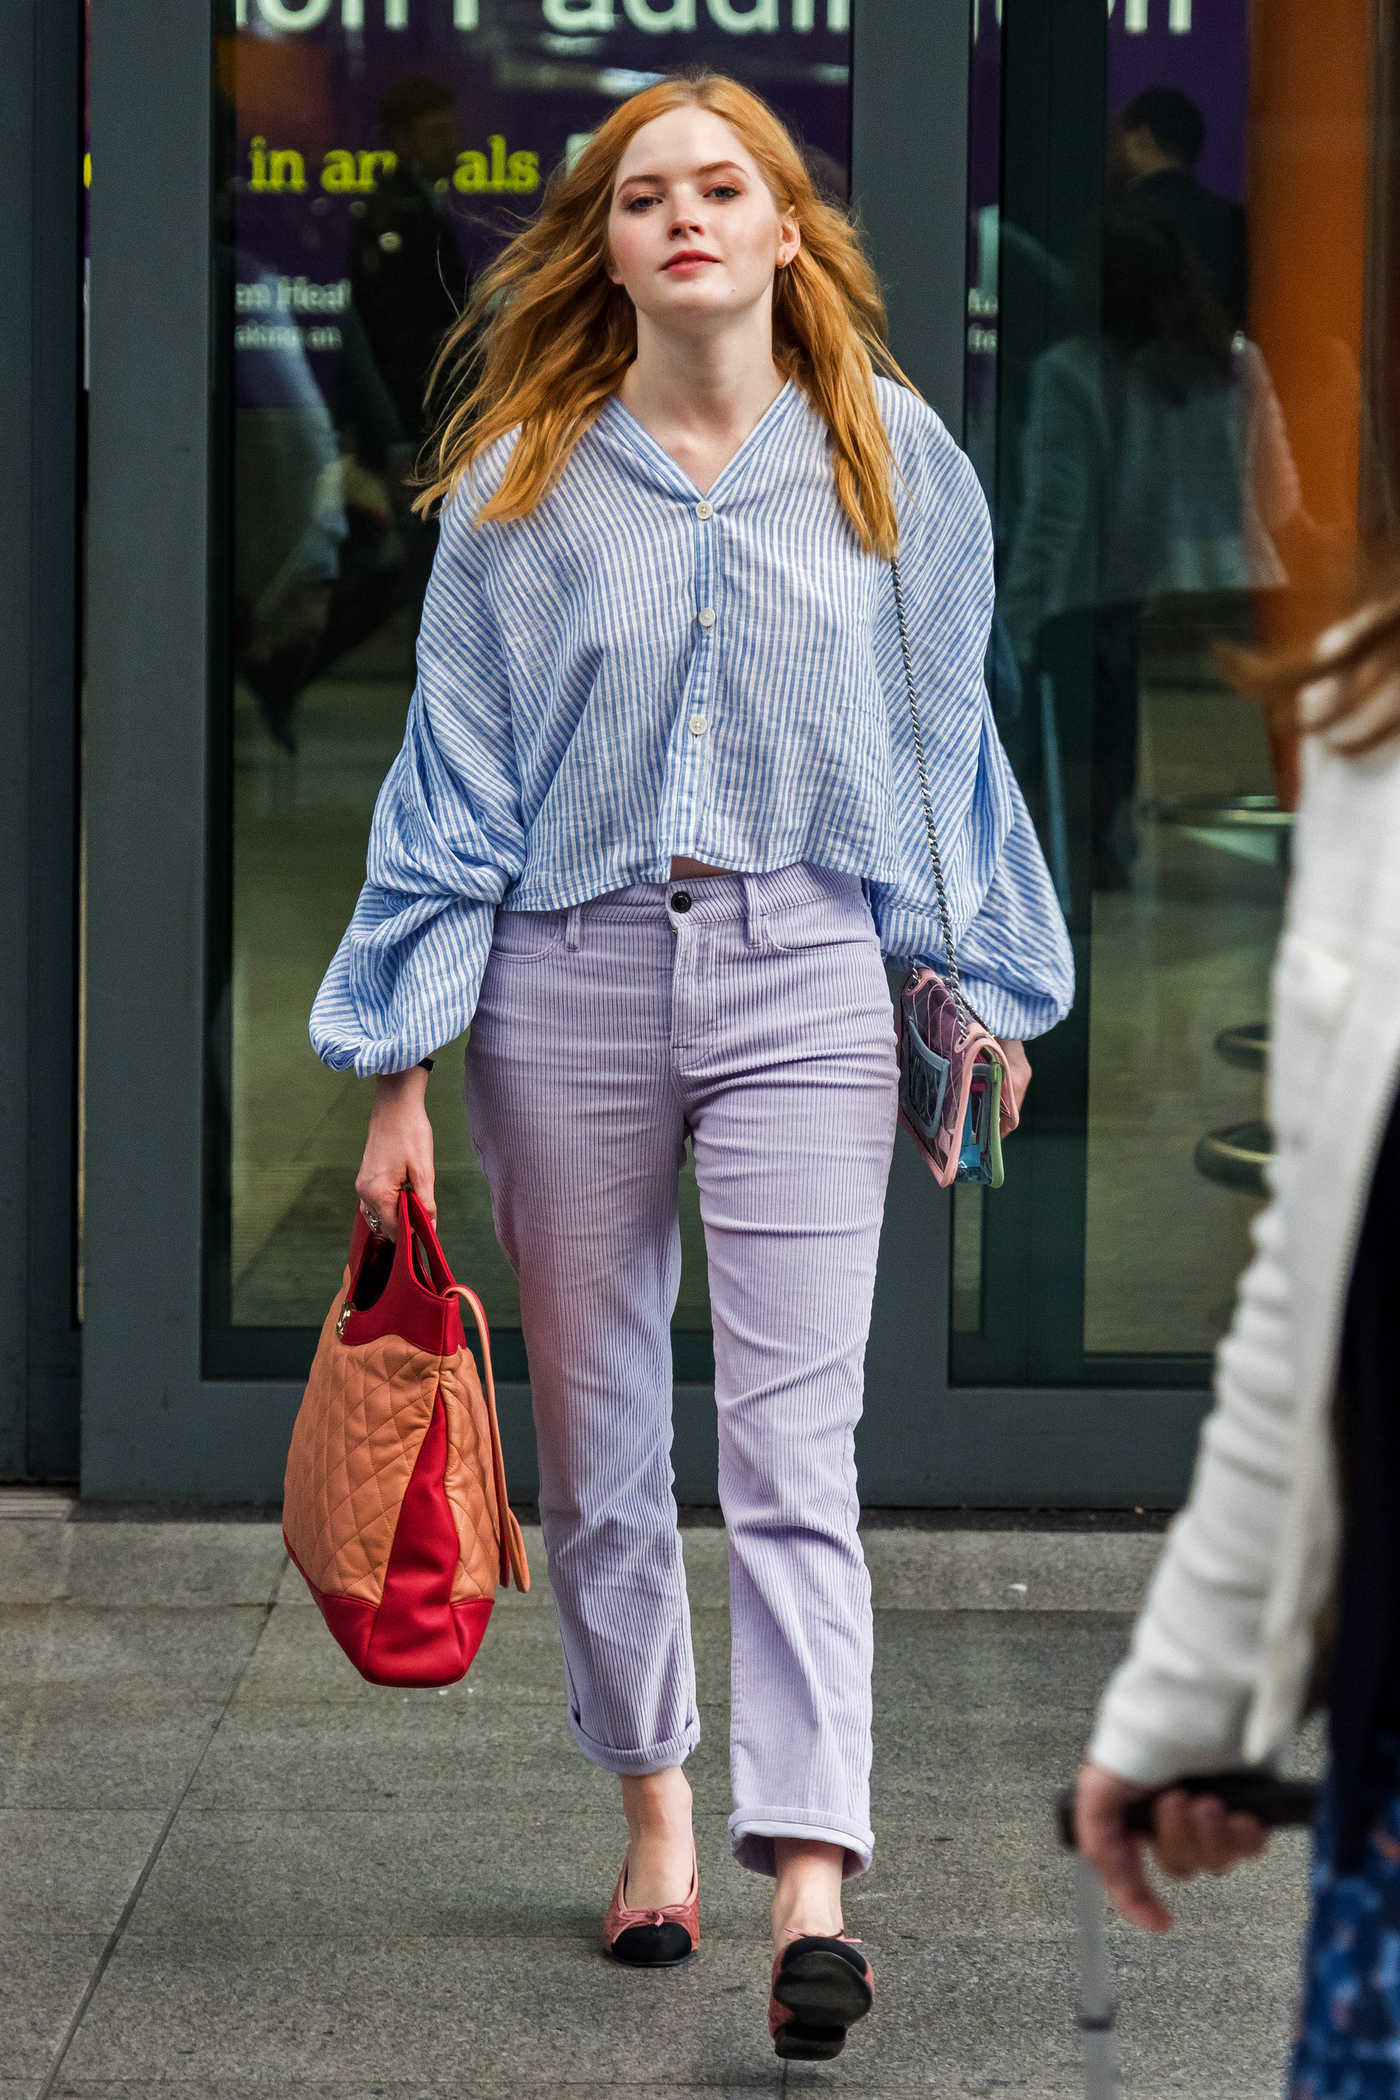 Ellie Bamber in a Striped Blouse Arrives at Heathrow Airport in London 10/17/2018